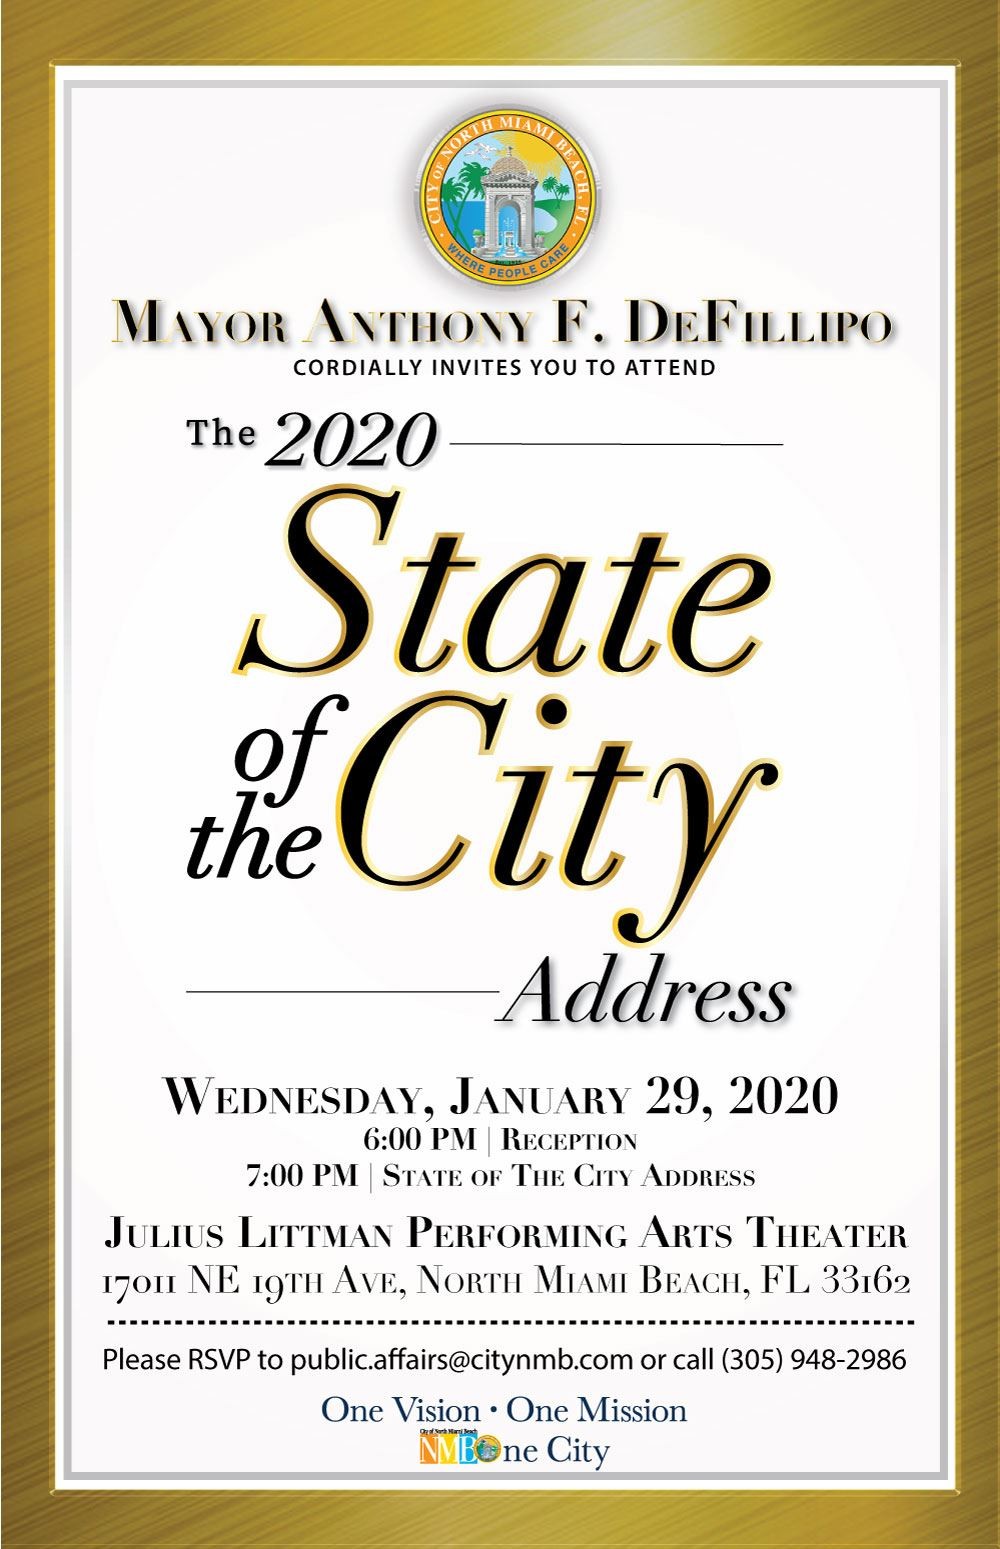 Mayor Anthony F. DeFillipo 2020 State of the City Address